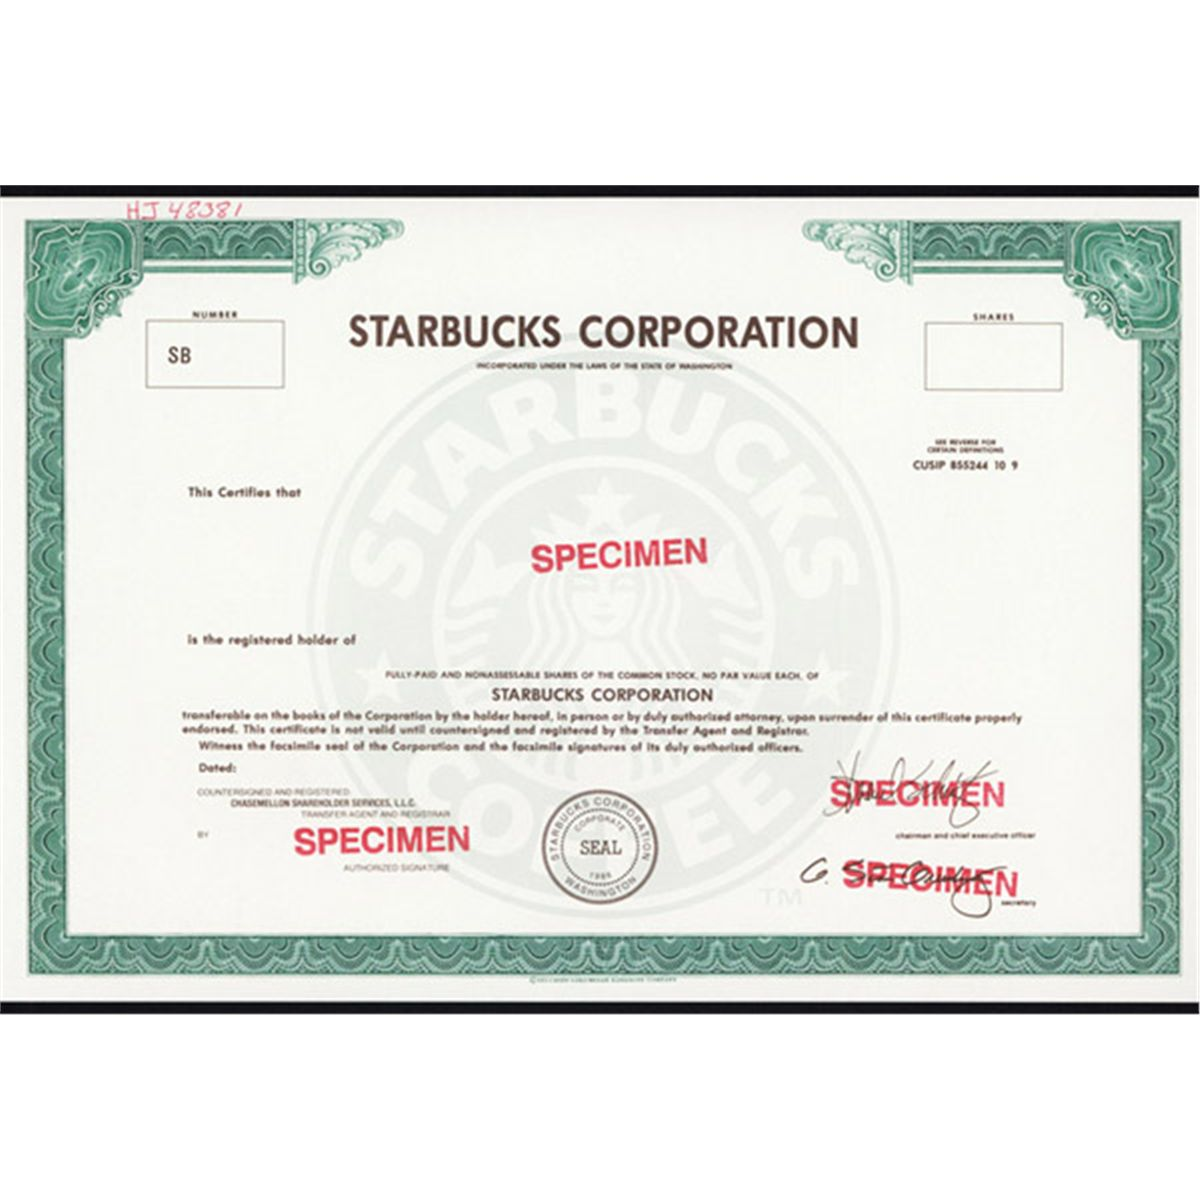 aple inc and starbucks corporation essay The essay on starbucks coffee accounto products corporation that offers specialty coffees, coffee beans, cold blended beverages, pastries, coffee related products and machines, and tea  because both apple inc and the starbucks corporation stand to gain from the istation, efforts will be taken in developing strategic co-operative.